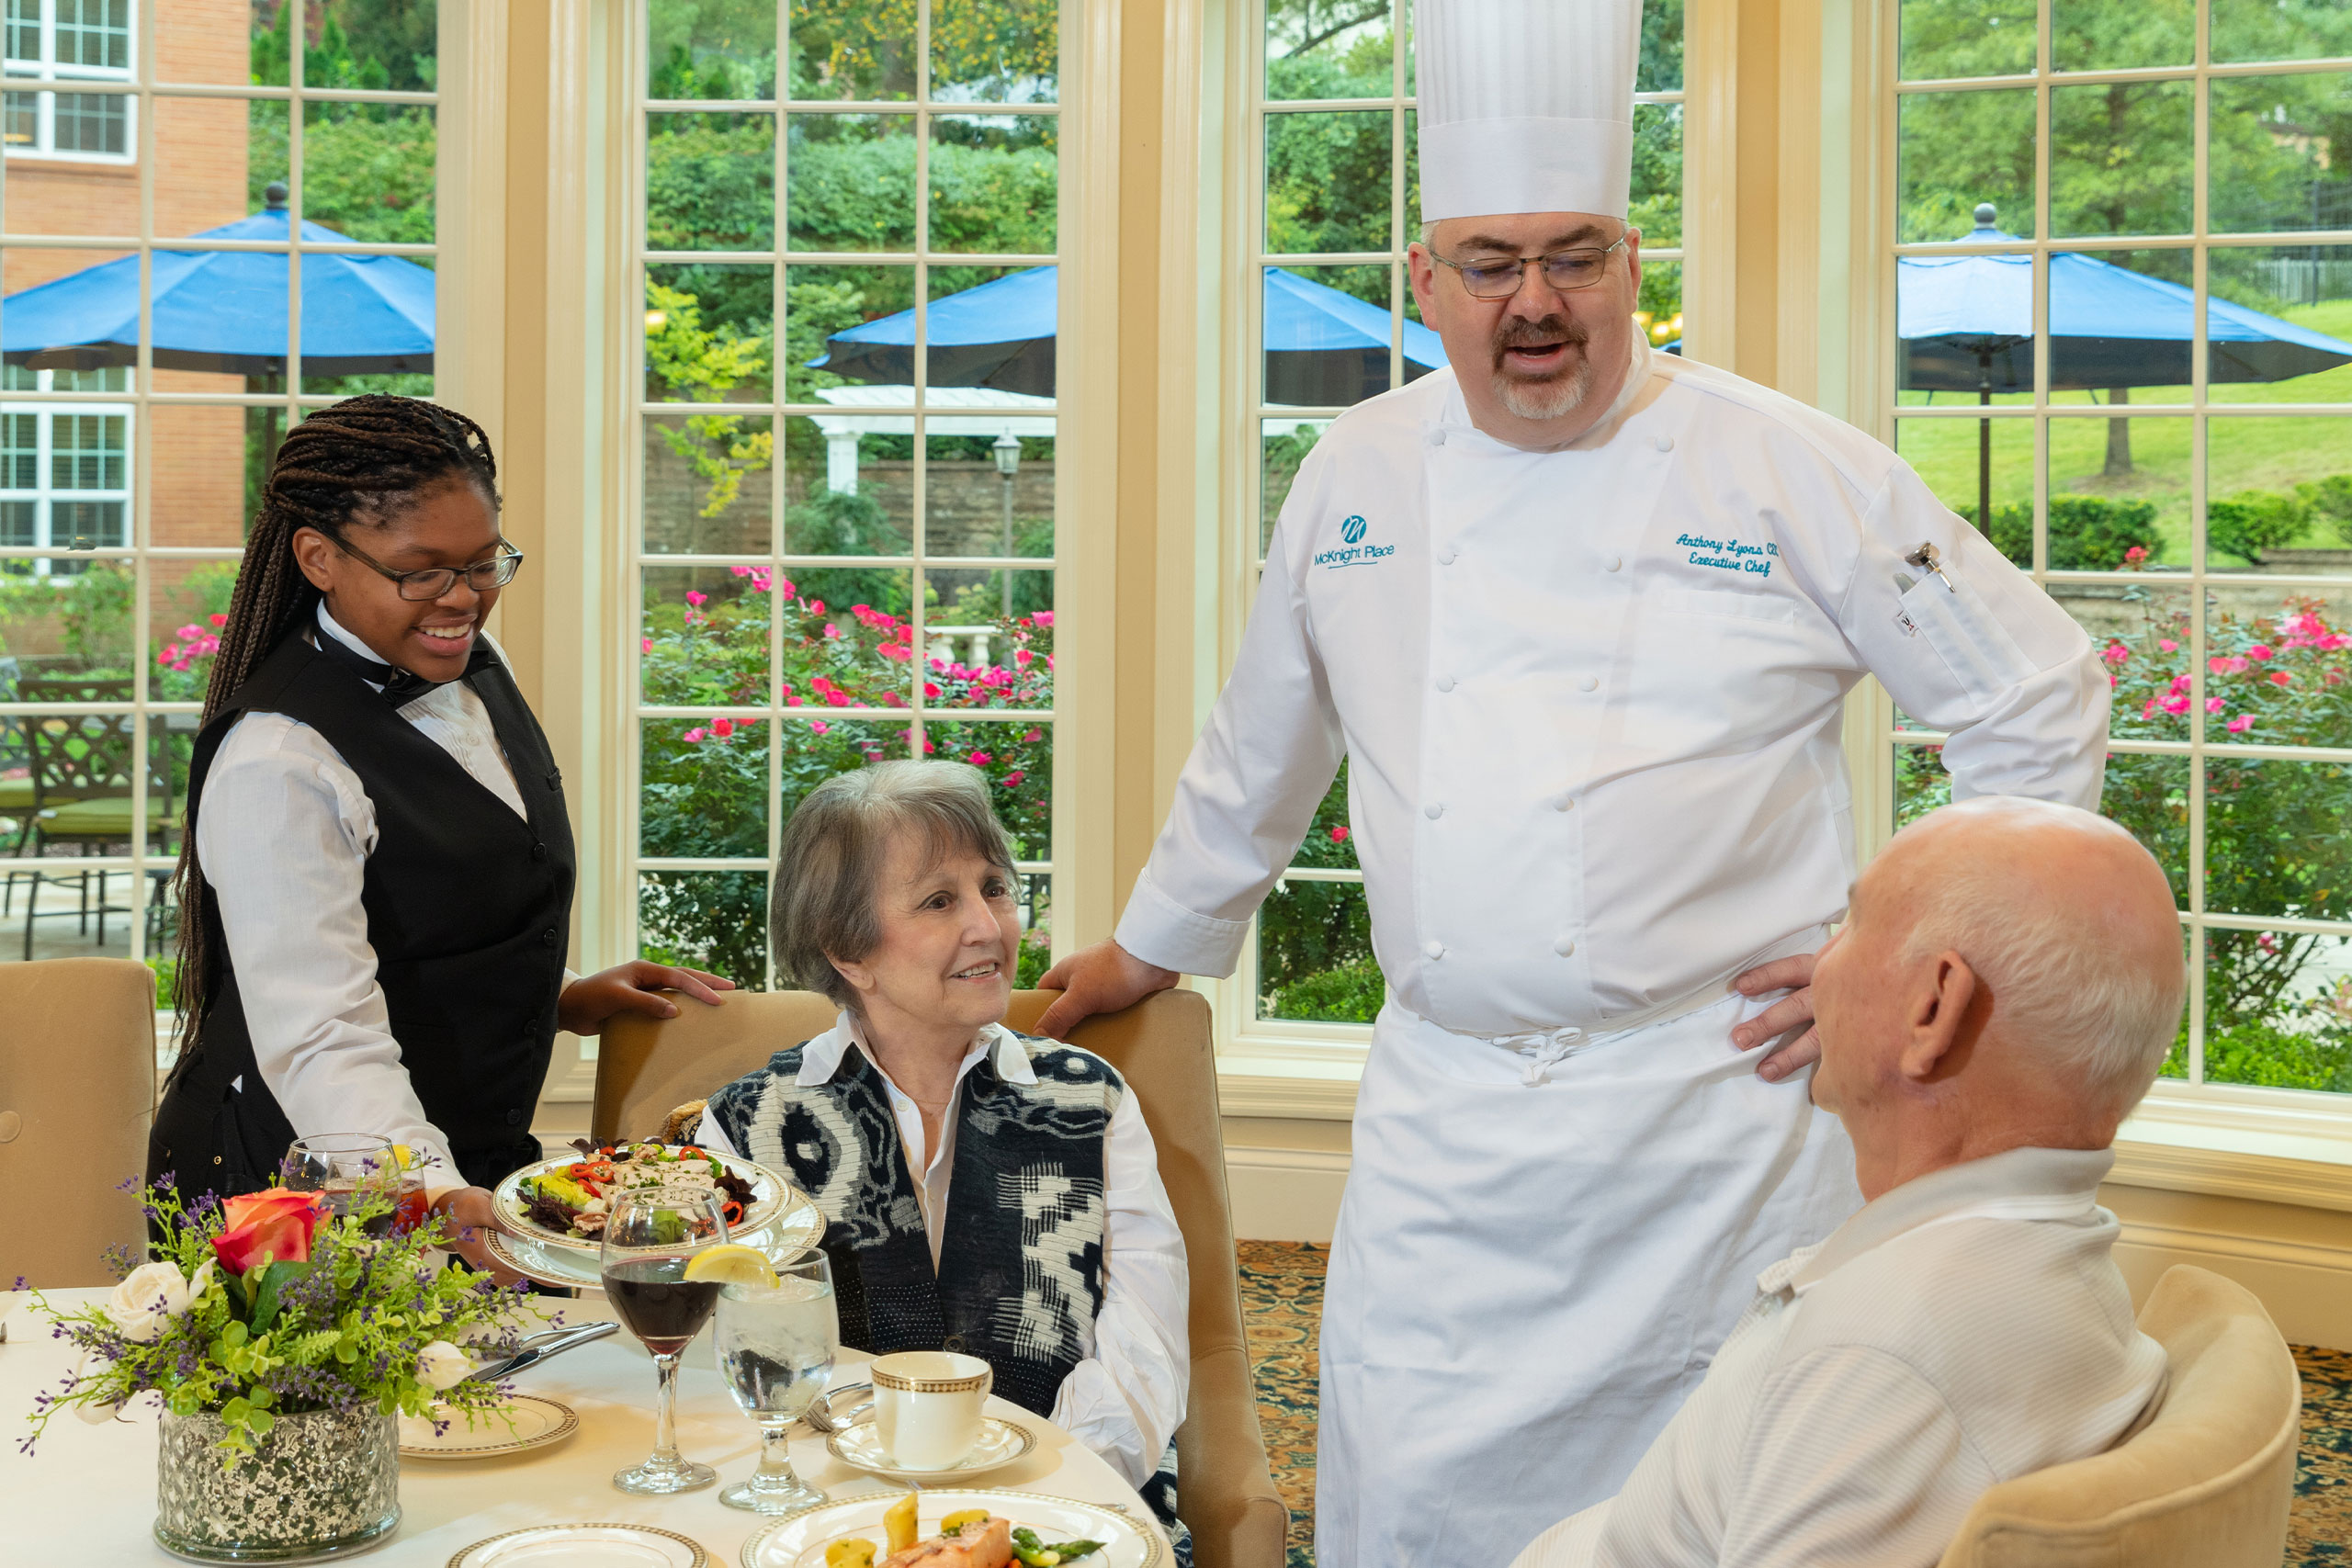 Executive Chef speaking with residents during meal.